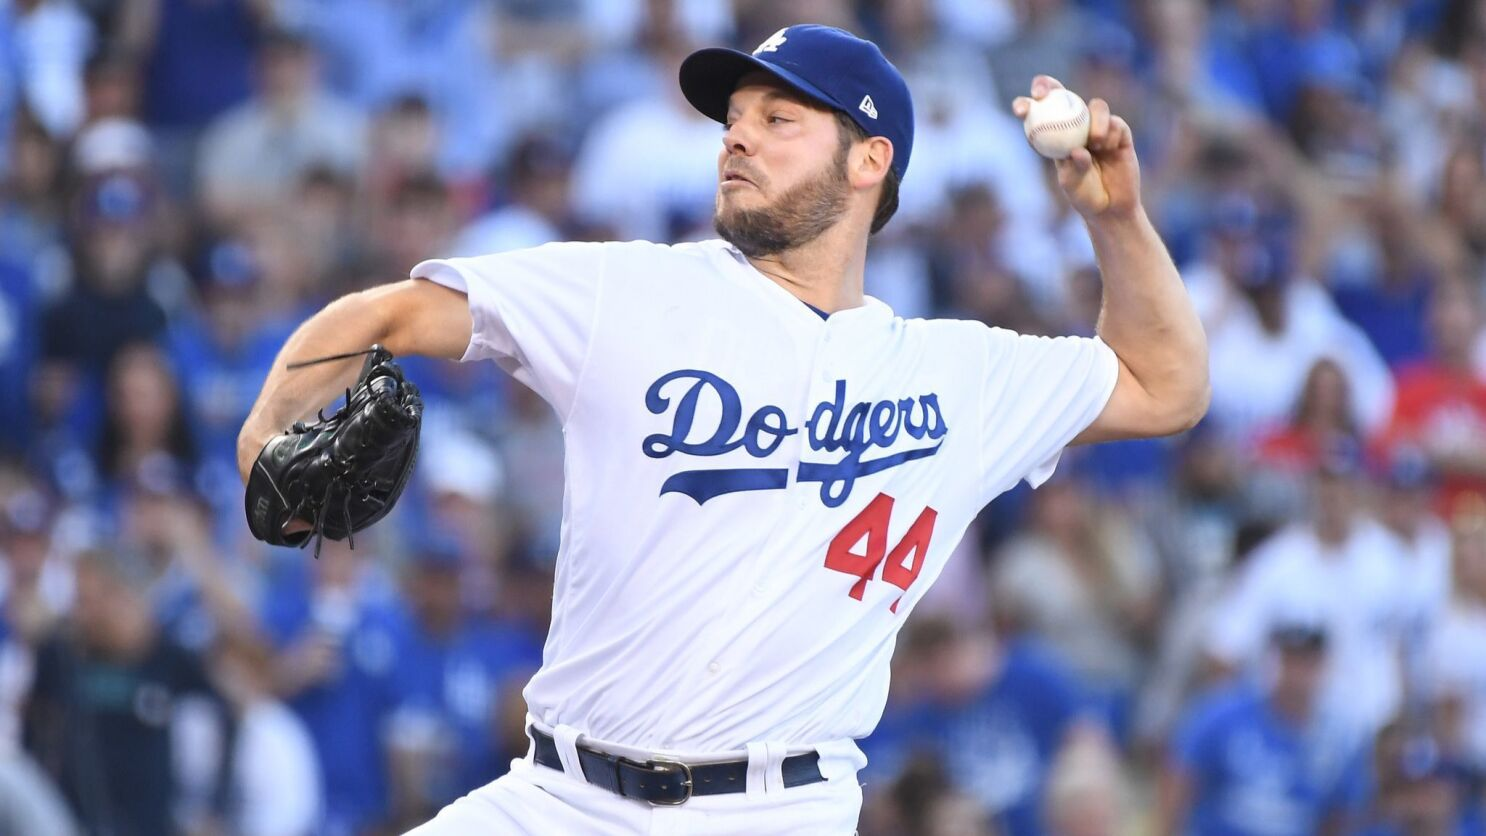 Dodgers' Rich Hill strikes out 16 in 6 innings of rehab start